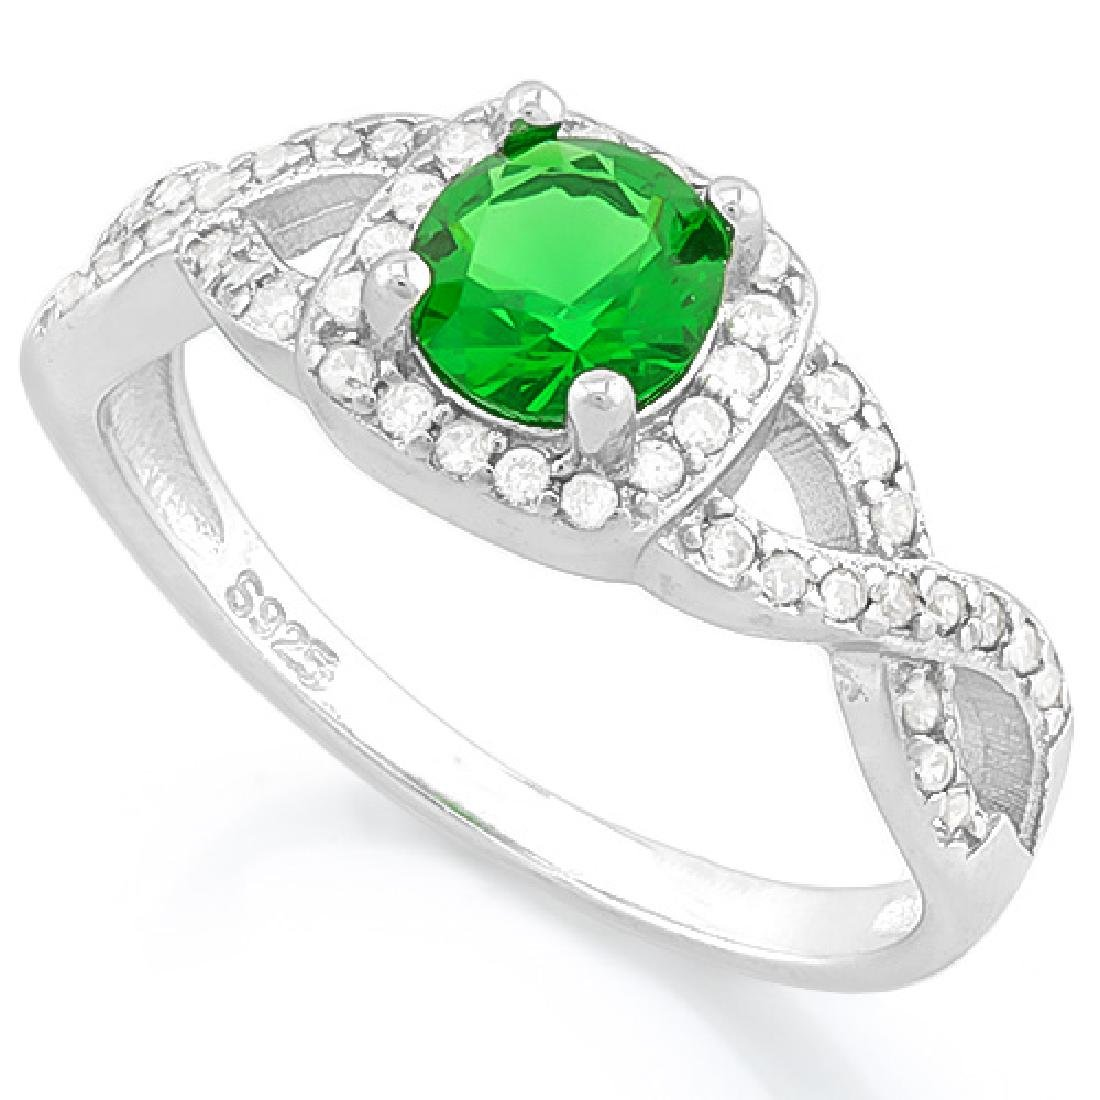 1 CARAT CREATED EMERALD & 1/2 CARAT (48 PCS) FLAWLESS C